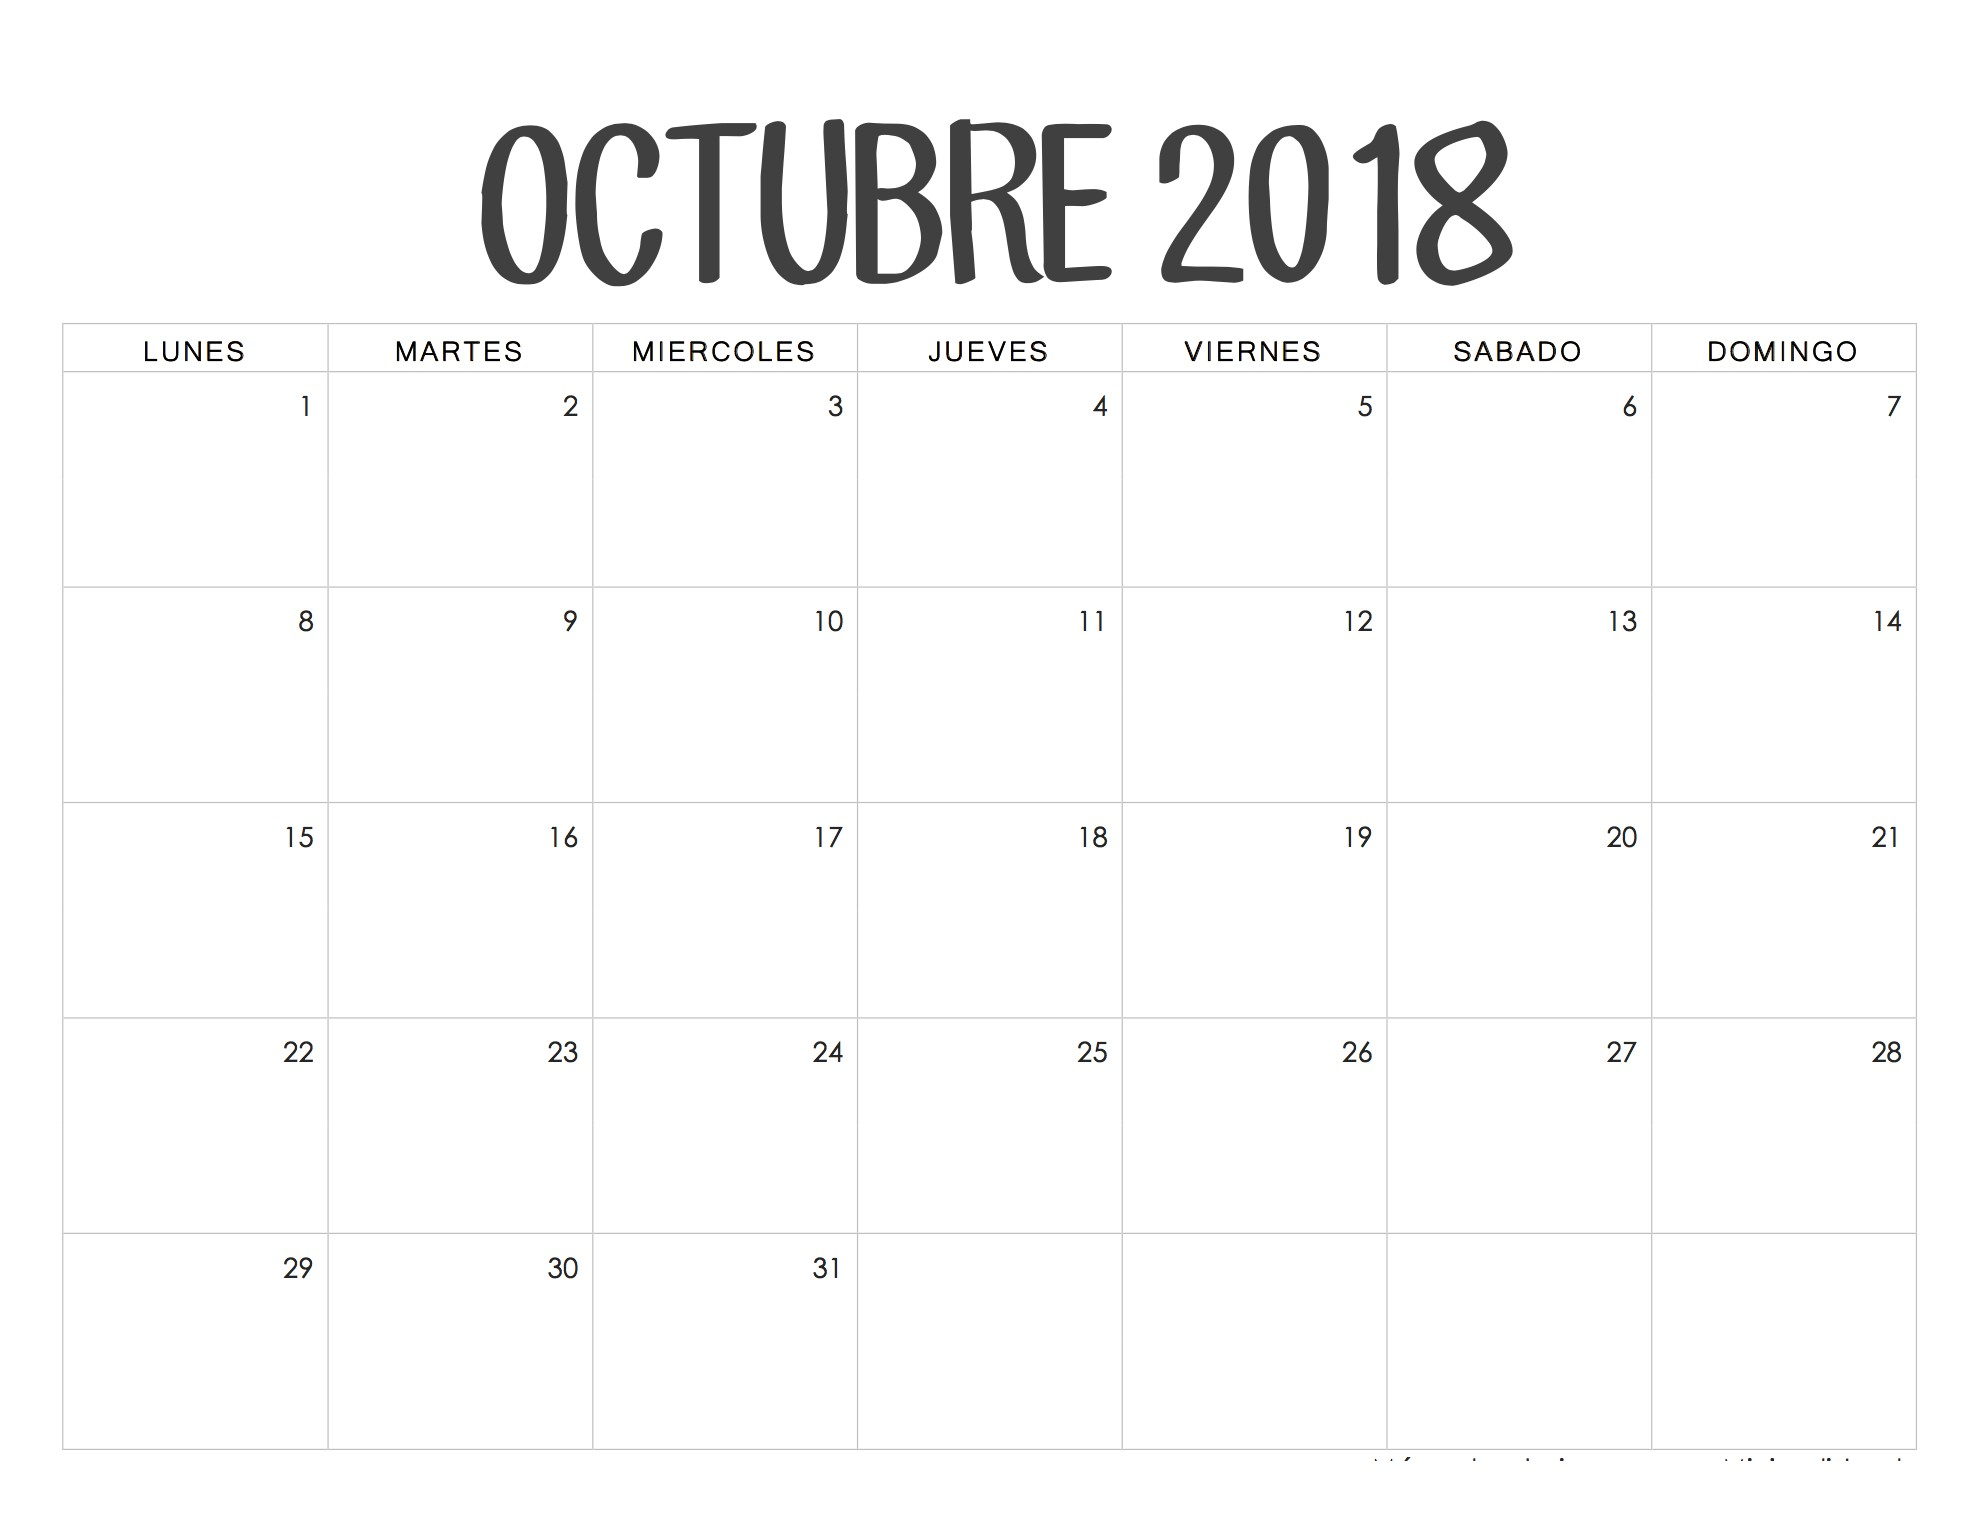 Calendario 2017 Para Imprimir Por Mes Abril Más Recientes Calendario Octubre 2018 Chile L Pinterest Of Calendario 2017 Para Imprimir Por Mes Abril Más Reciente Blend Calendario Para Escribir — Blendiberia